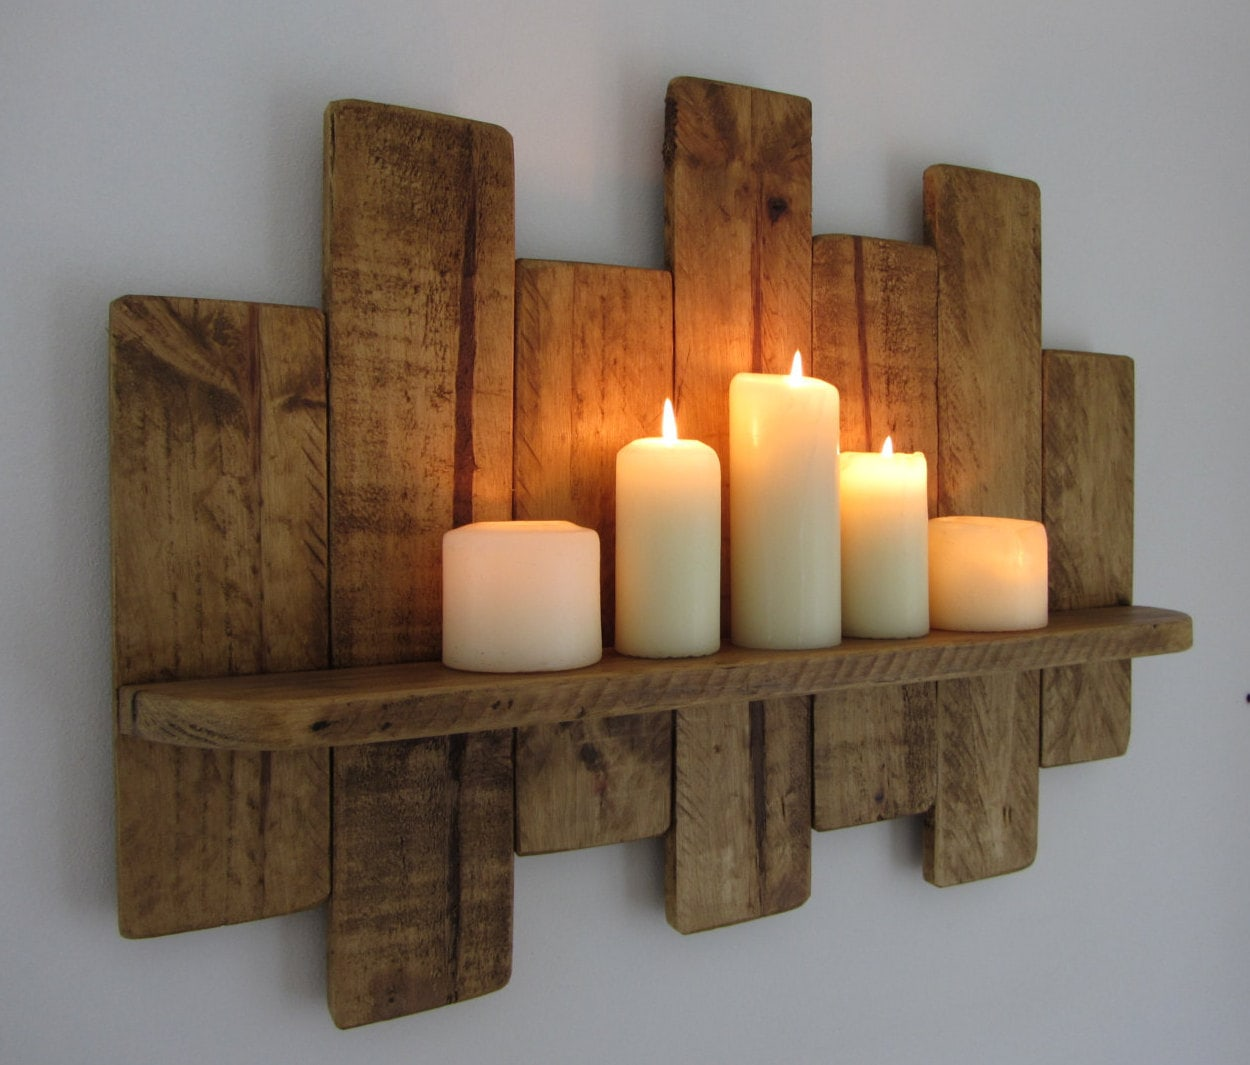 Estante decorativo hecho con pallets